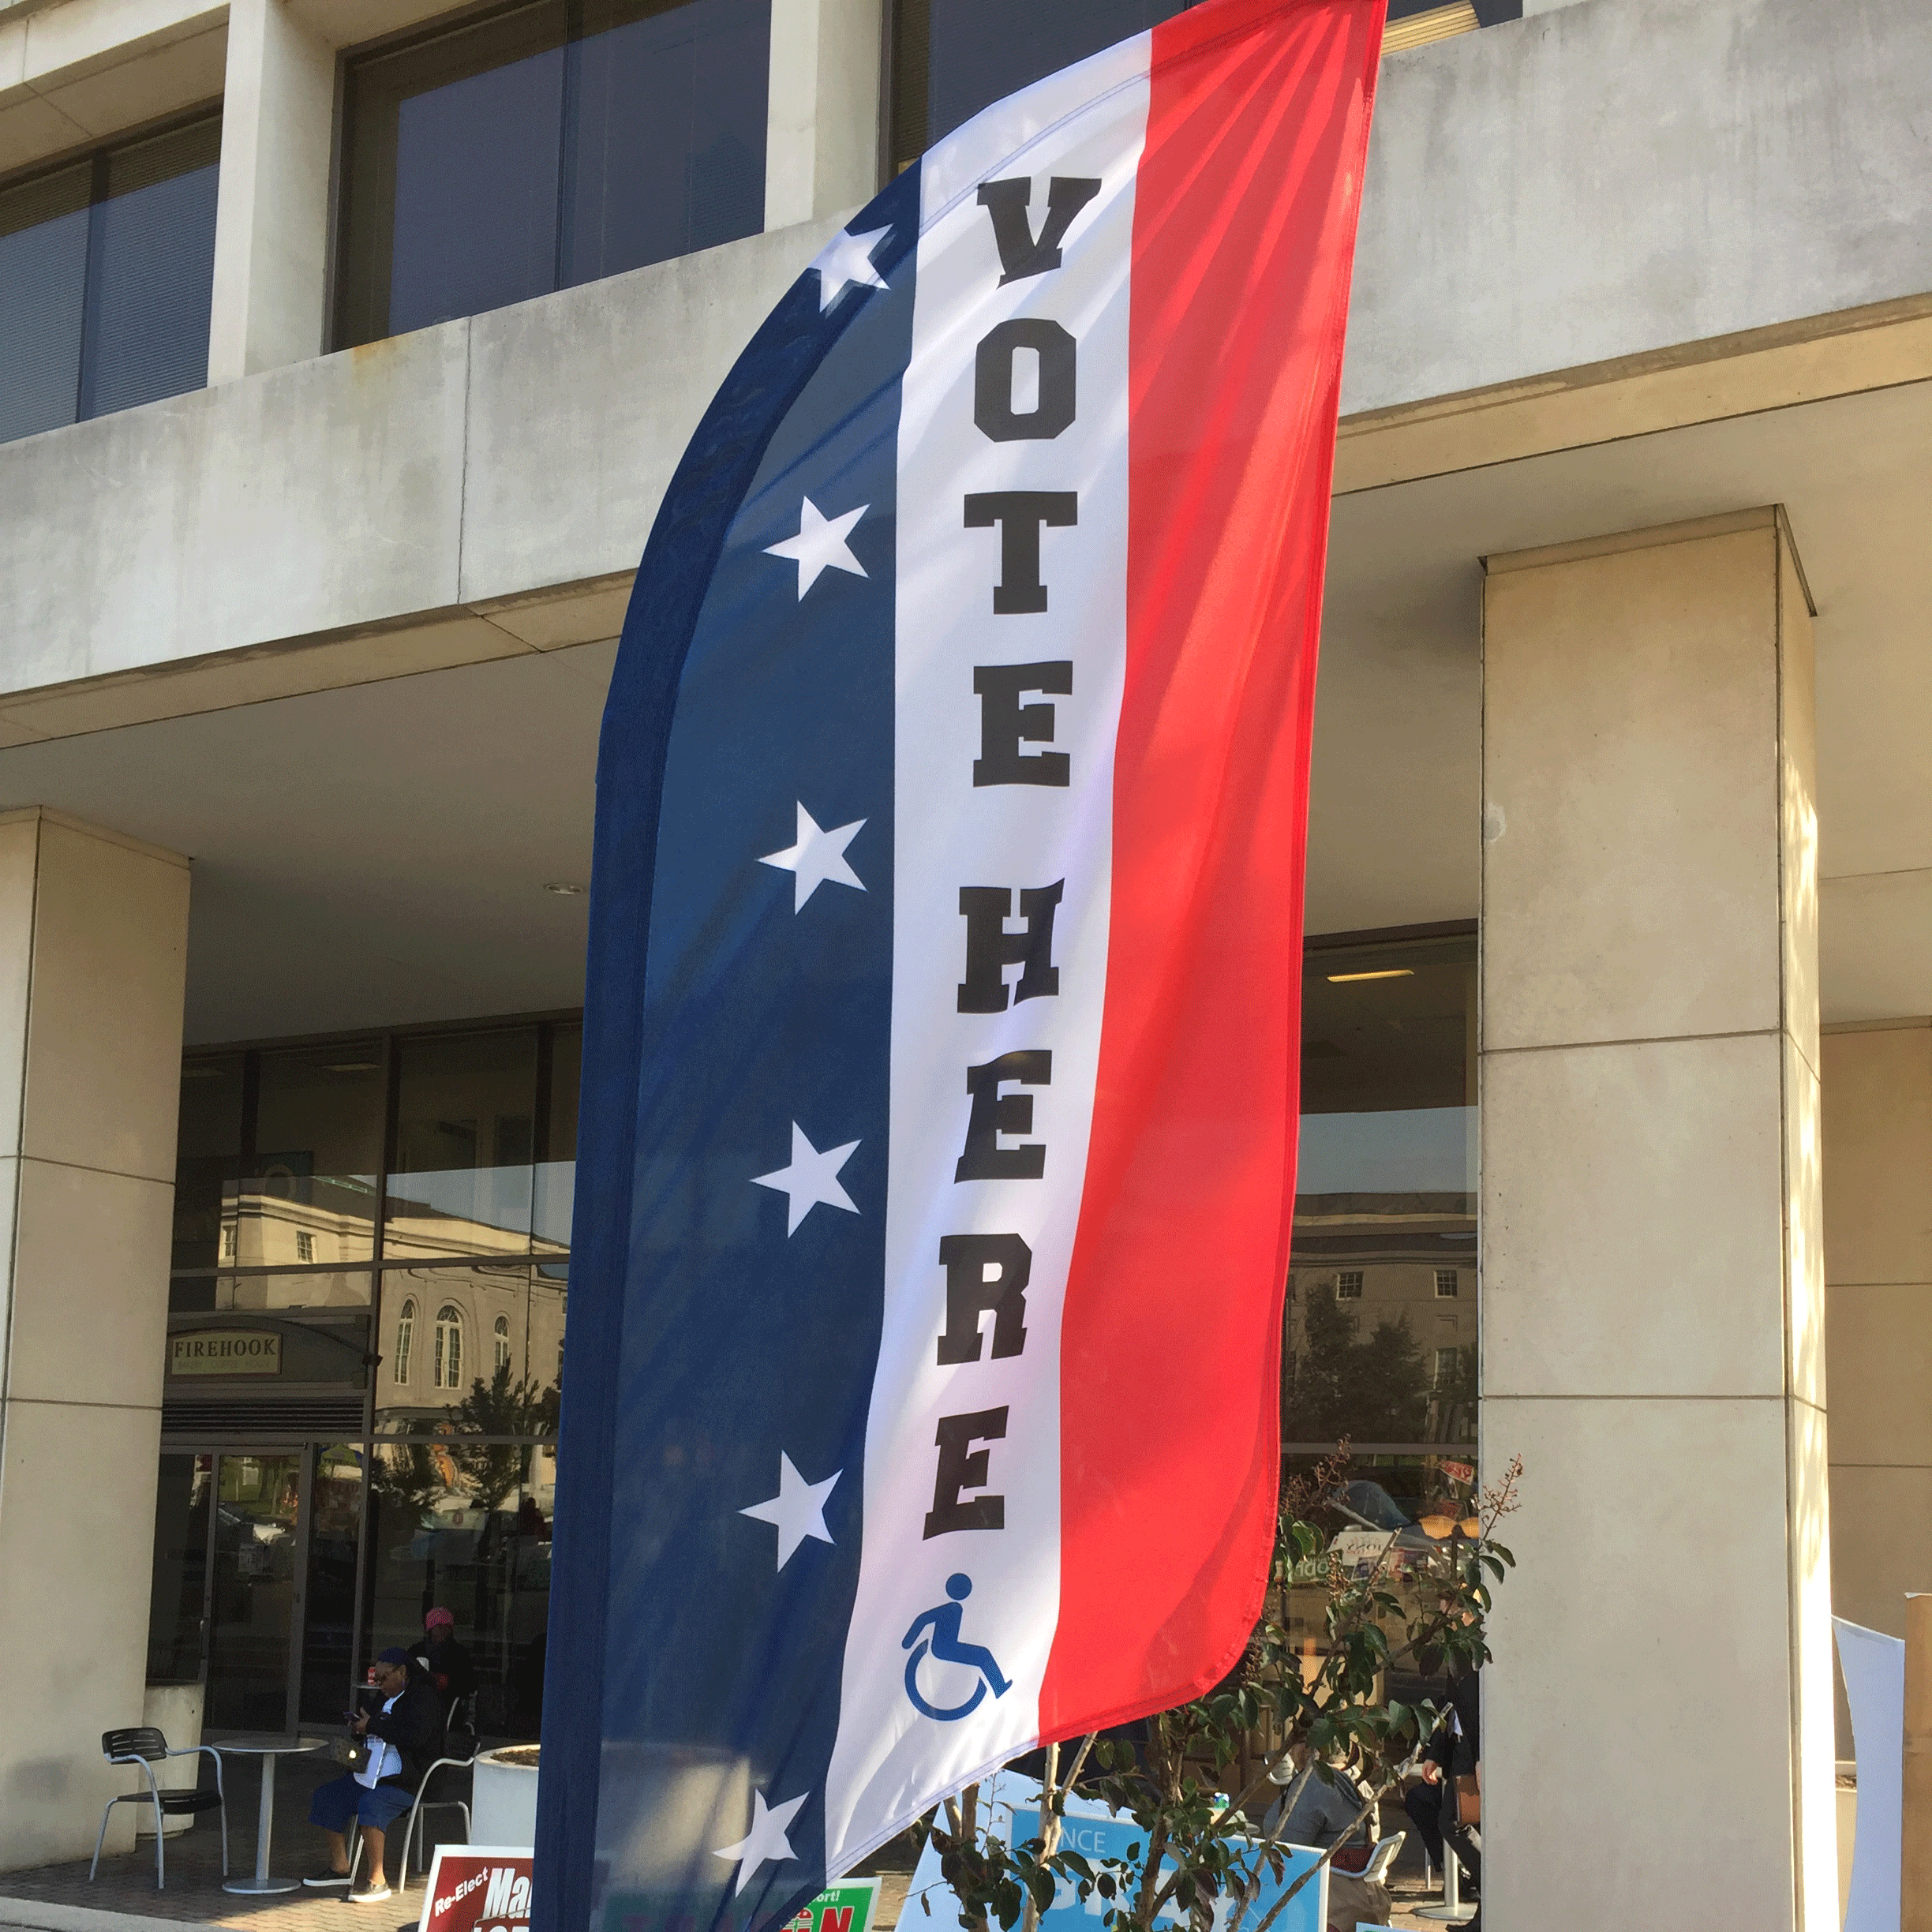 LISA BURGOA/THE HOYA Numerous efforts by student organizations such as GU Votes have encouraged students to make their voices heard in the 2016 election.